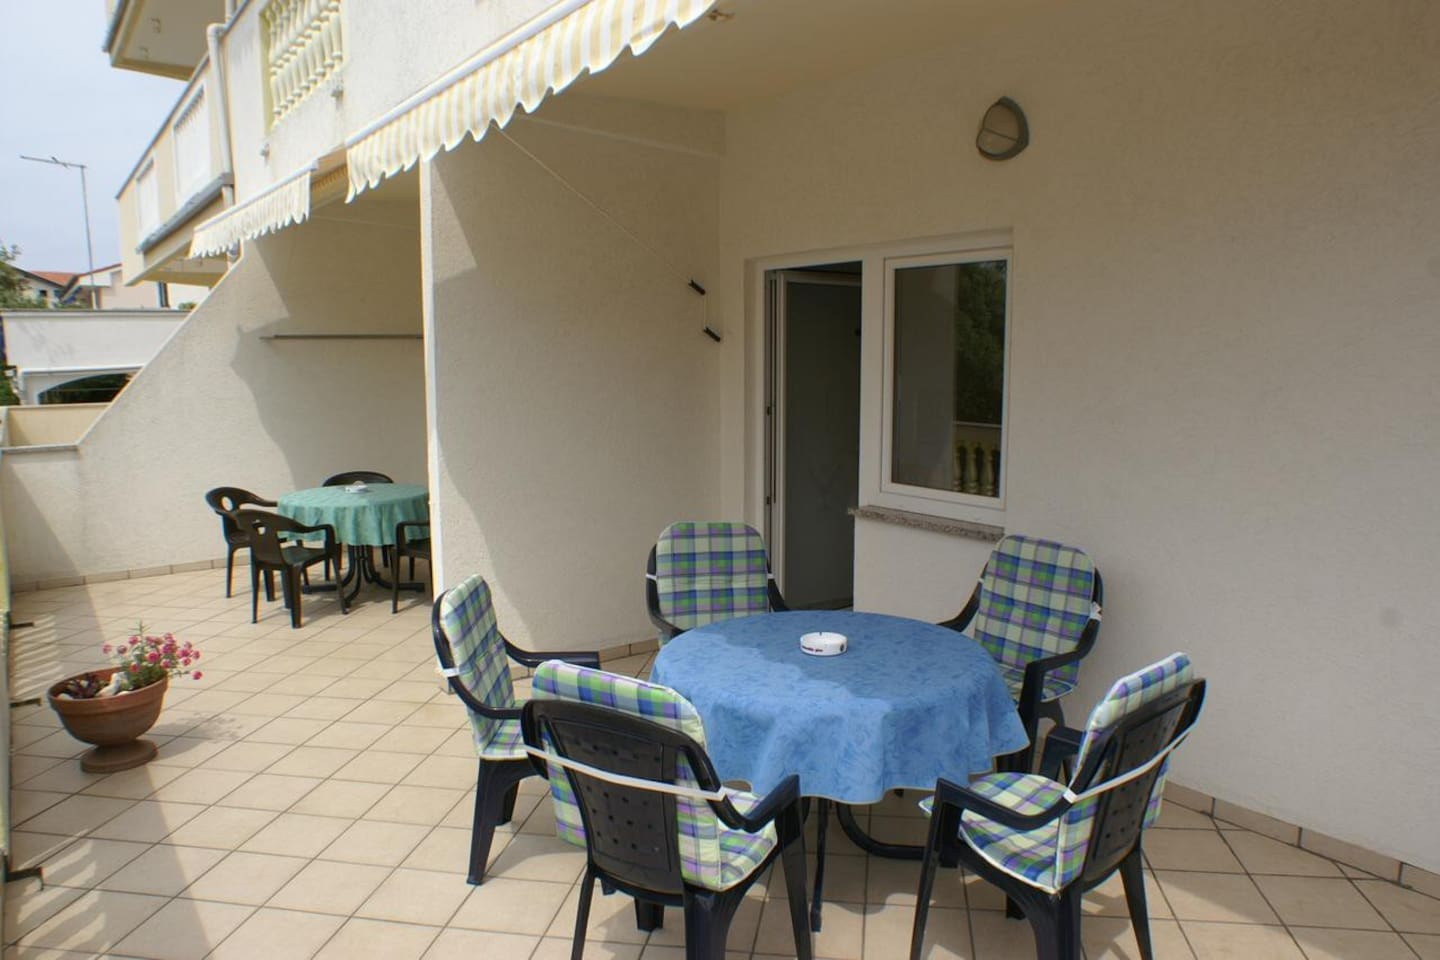 Terrace, Surface: 18 m²